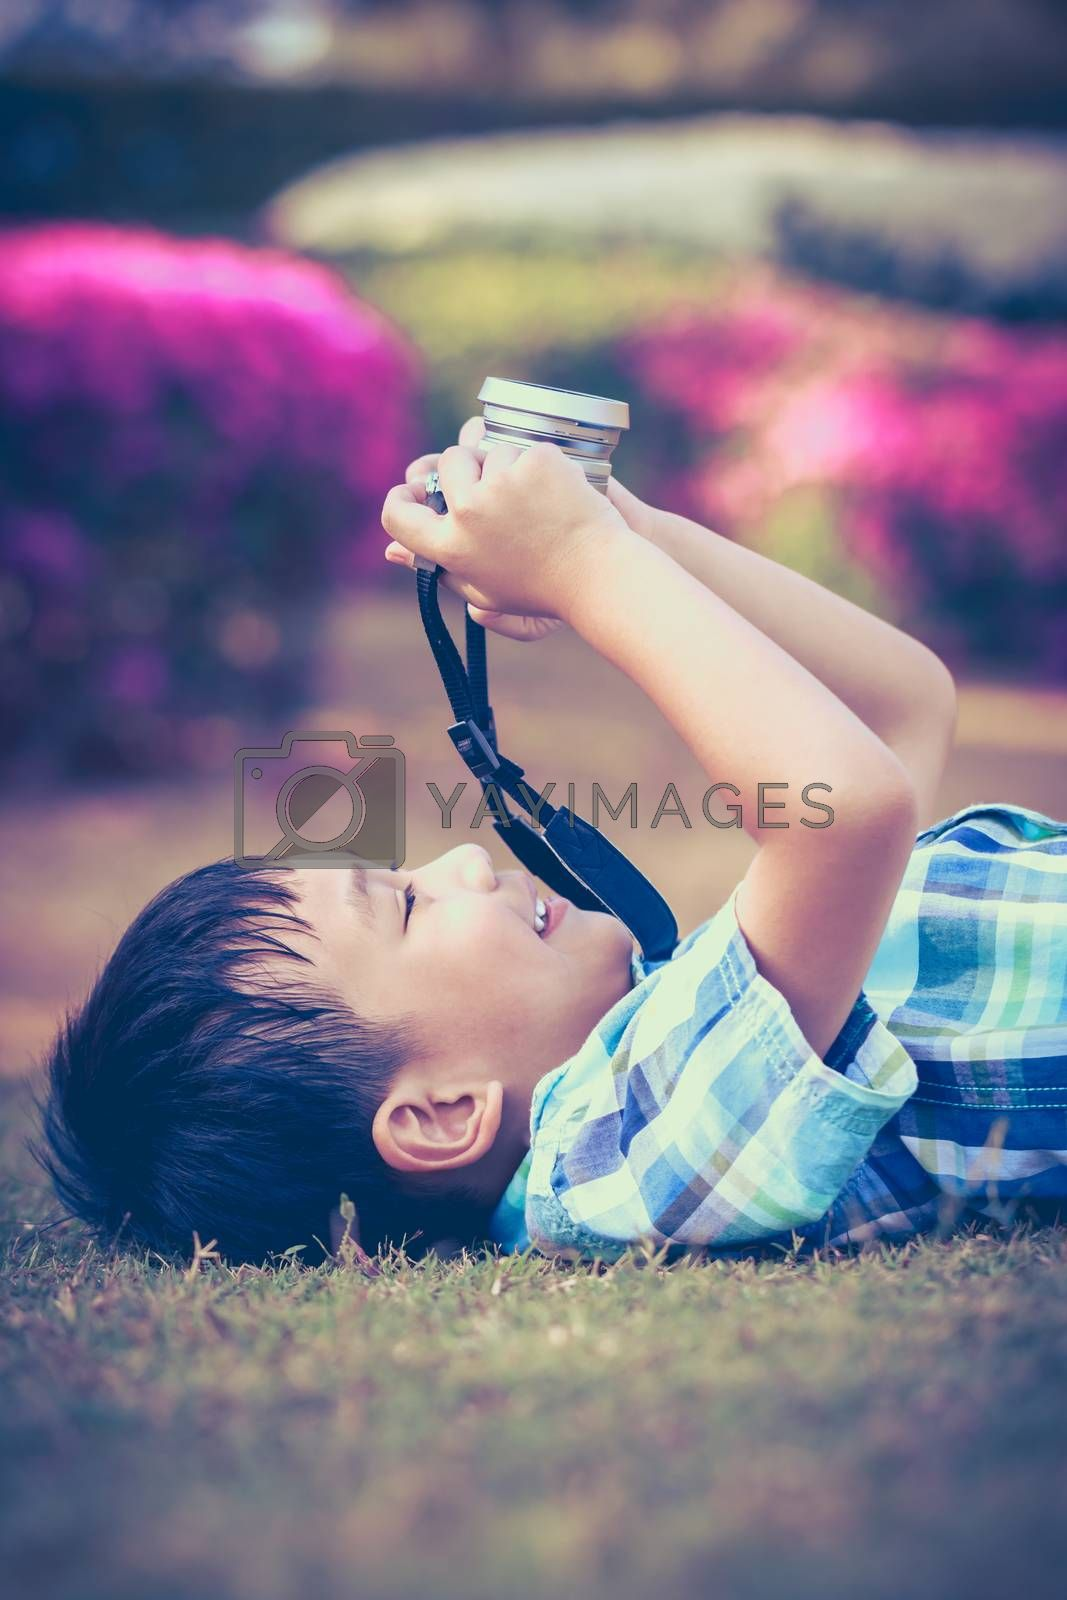 Handsome asian boy taking photo by vintage film camera, exploring nature at park, on summer in the day time. Child in nature, outdoors. Active lifestyle, curiosity, pursuing a hobby concept. Vintage.